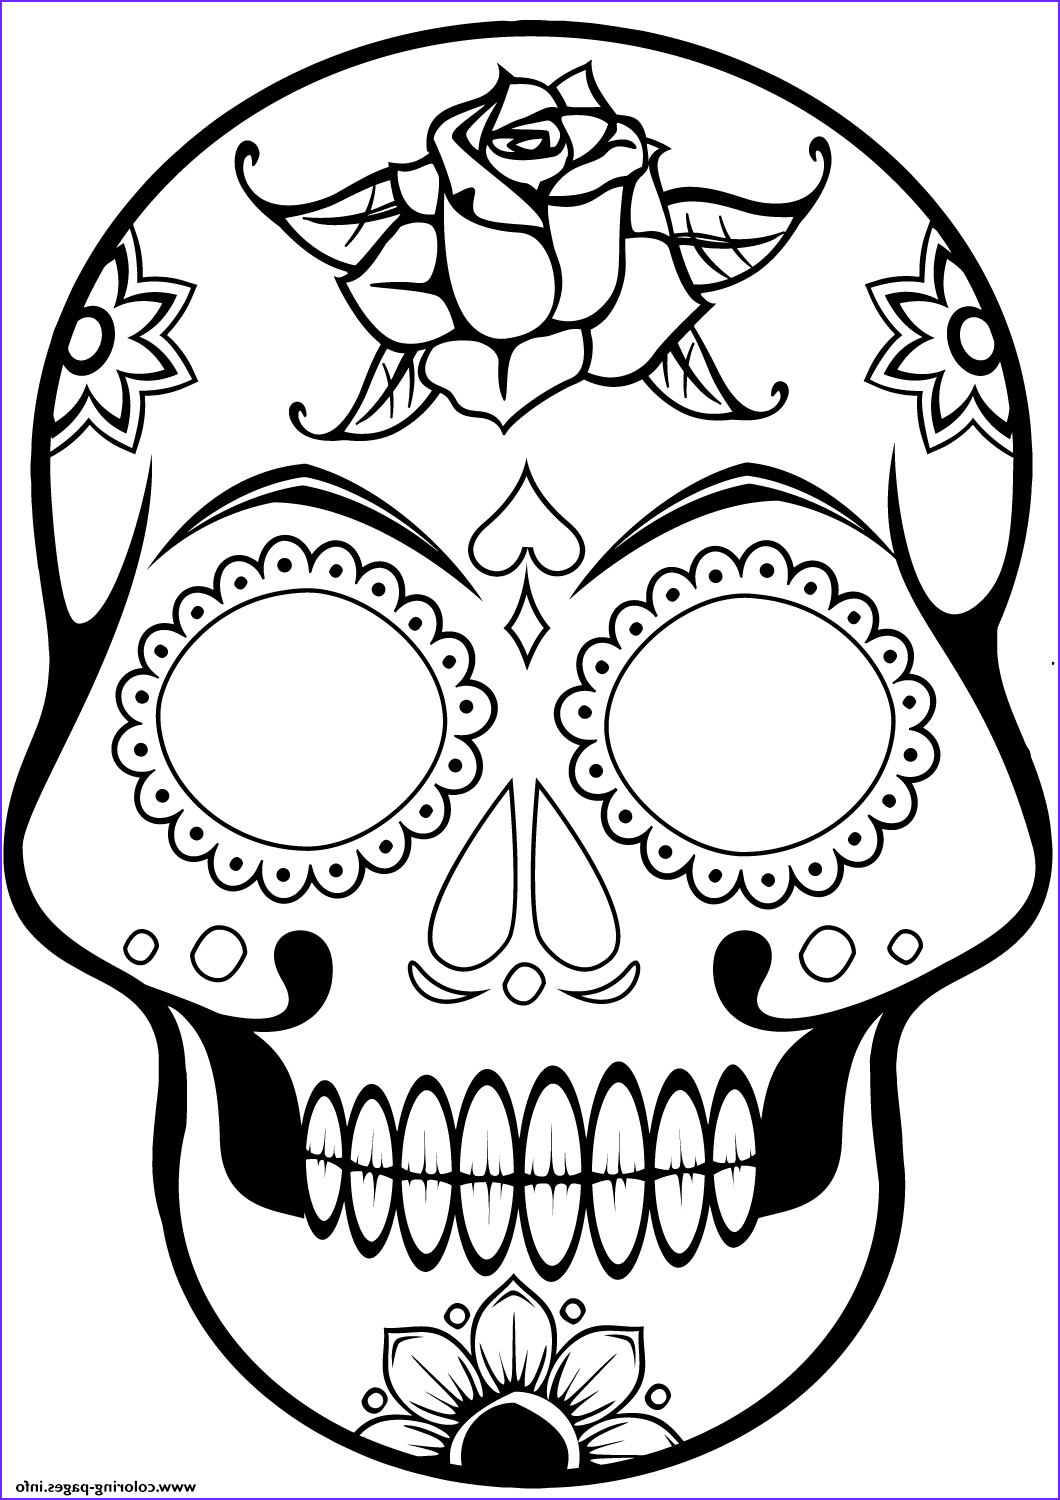 cool sugar skull 2 1 calavera printable coloring pages book